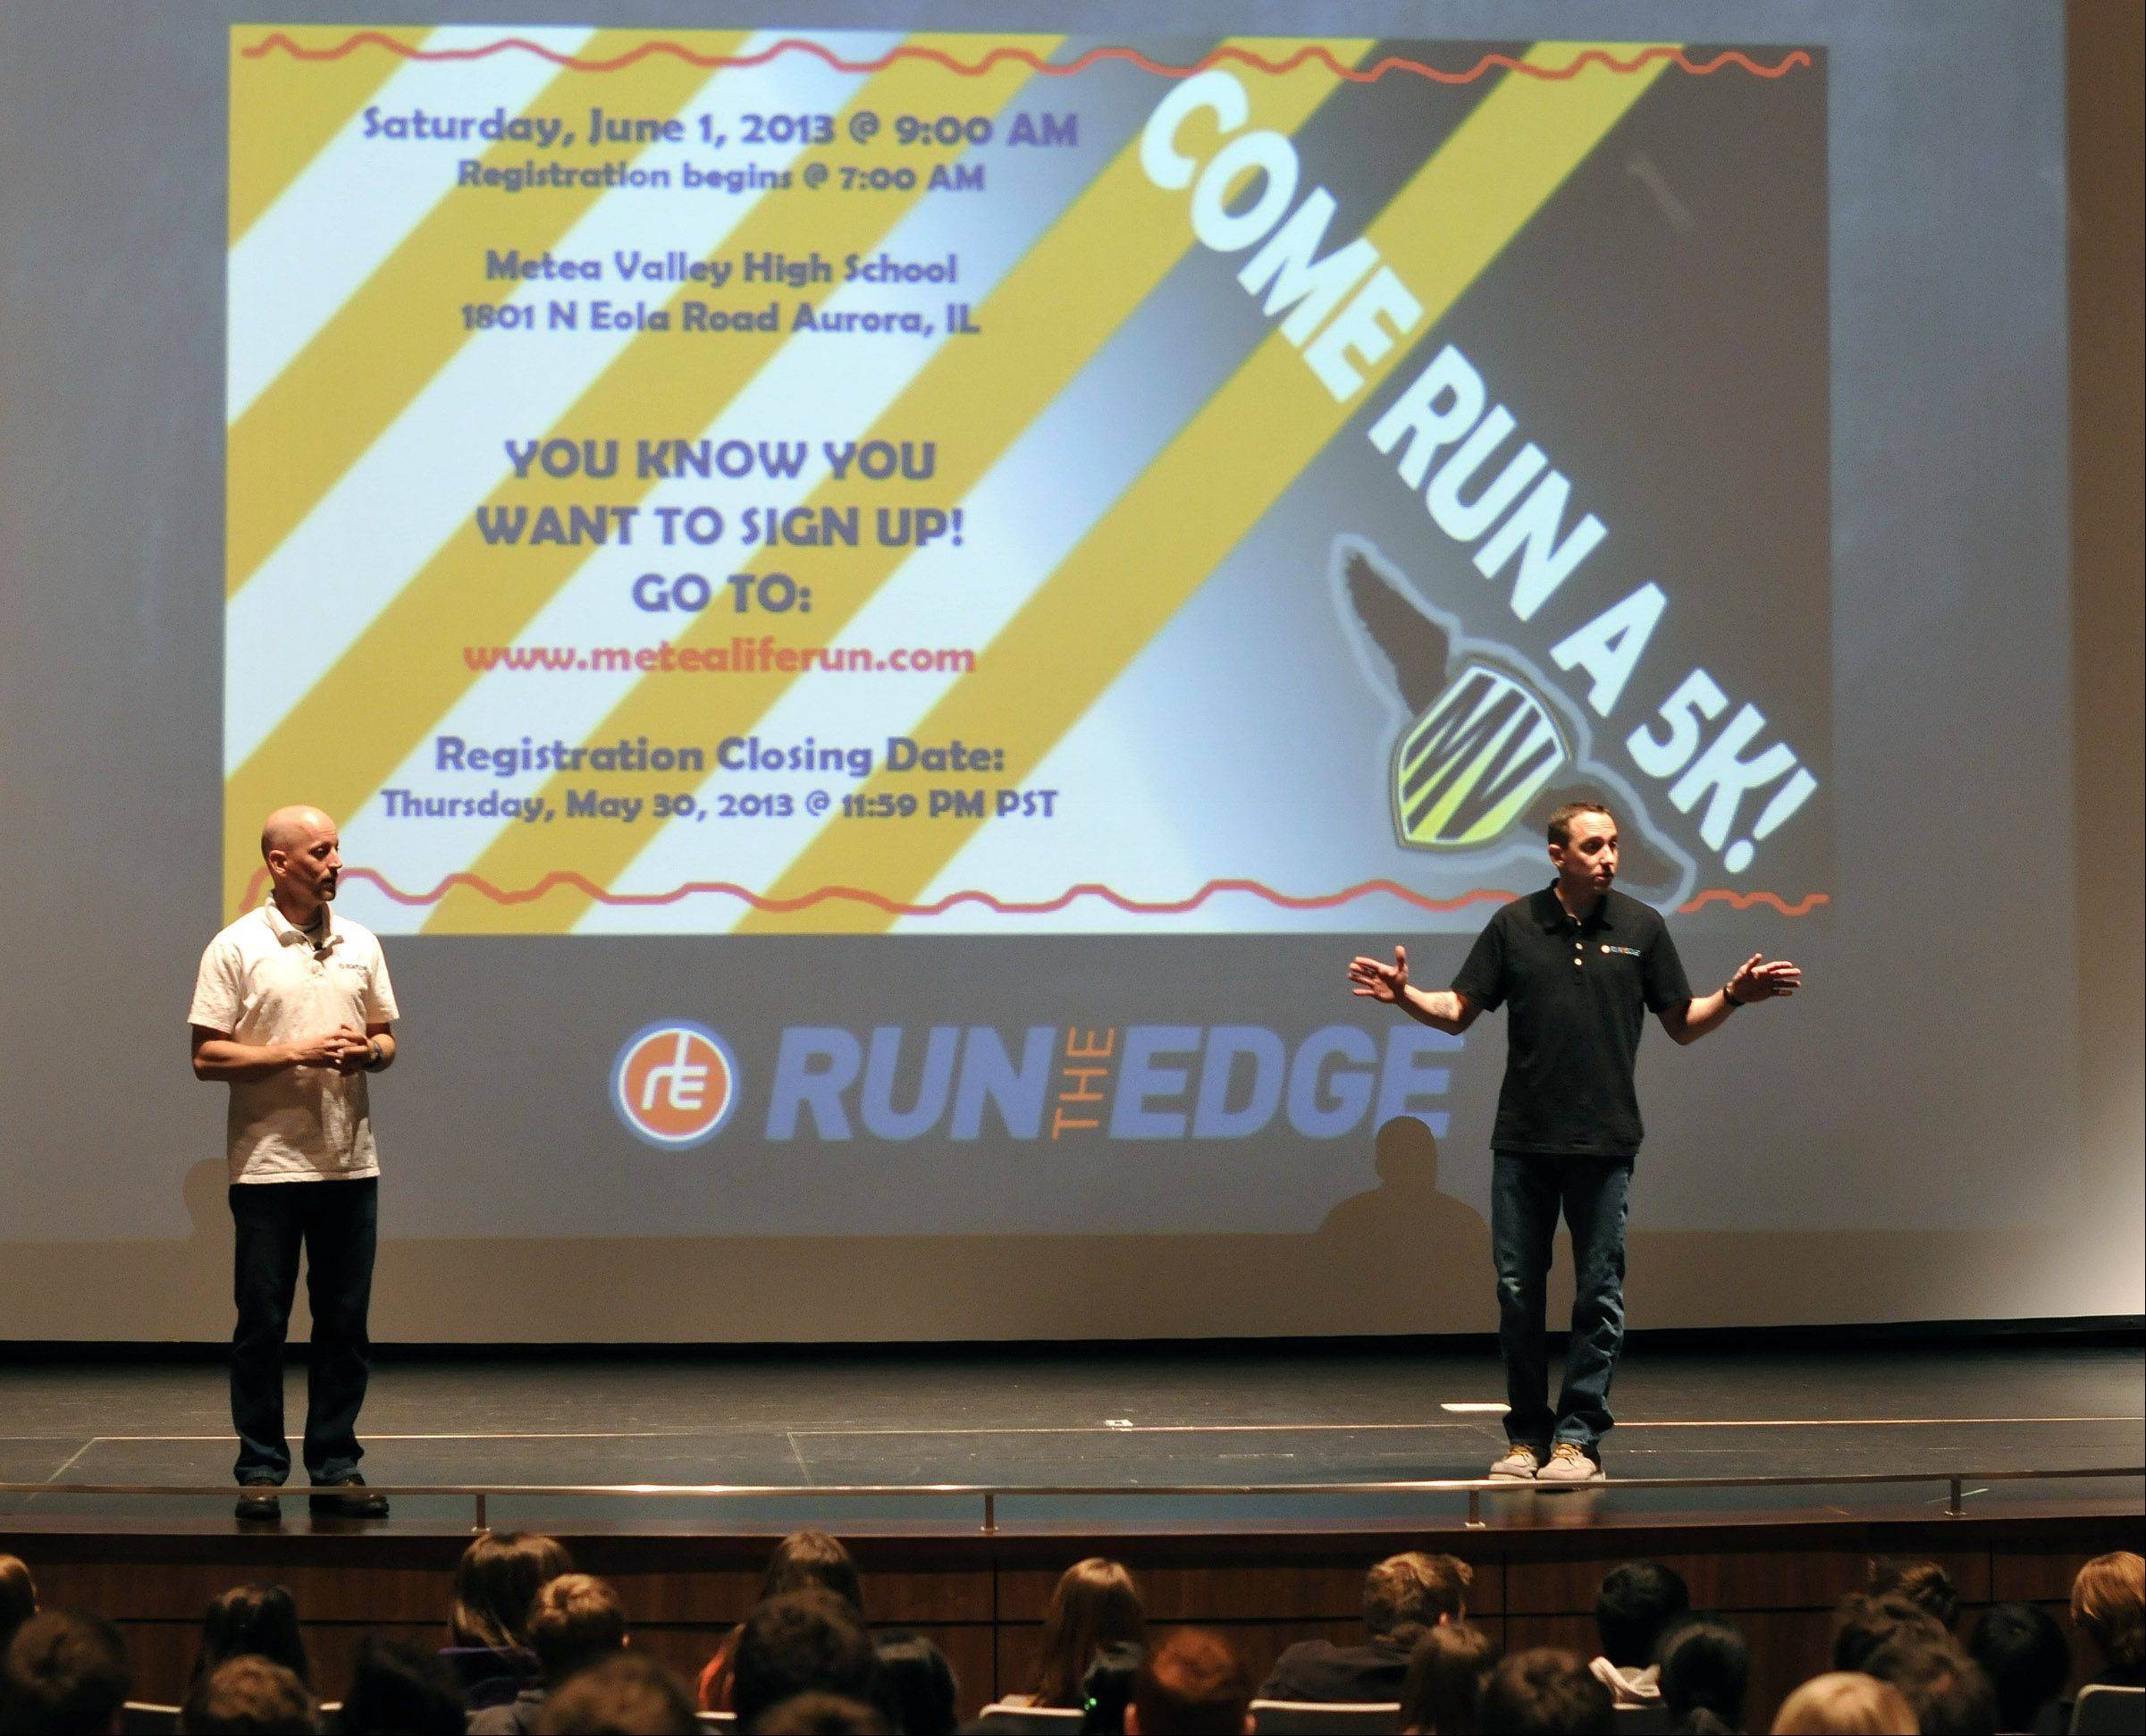 """Running the Edge"" authors Tim Catalano and Adam Goucher will attend Metea Valley High School's first charity 5K, the Metea LIFE Run, at 9 a.m. Saturday, June 1, at the school in Aurora. The authors appeared at the school in April, discussing their book and encouraging students to set and strive for ambitious goals."